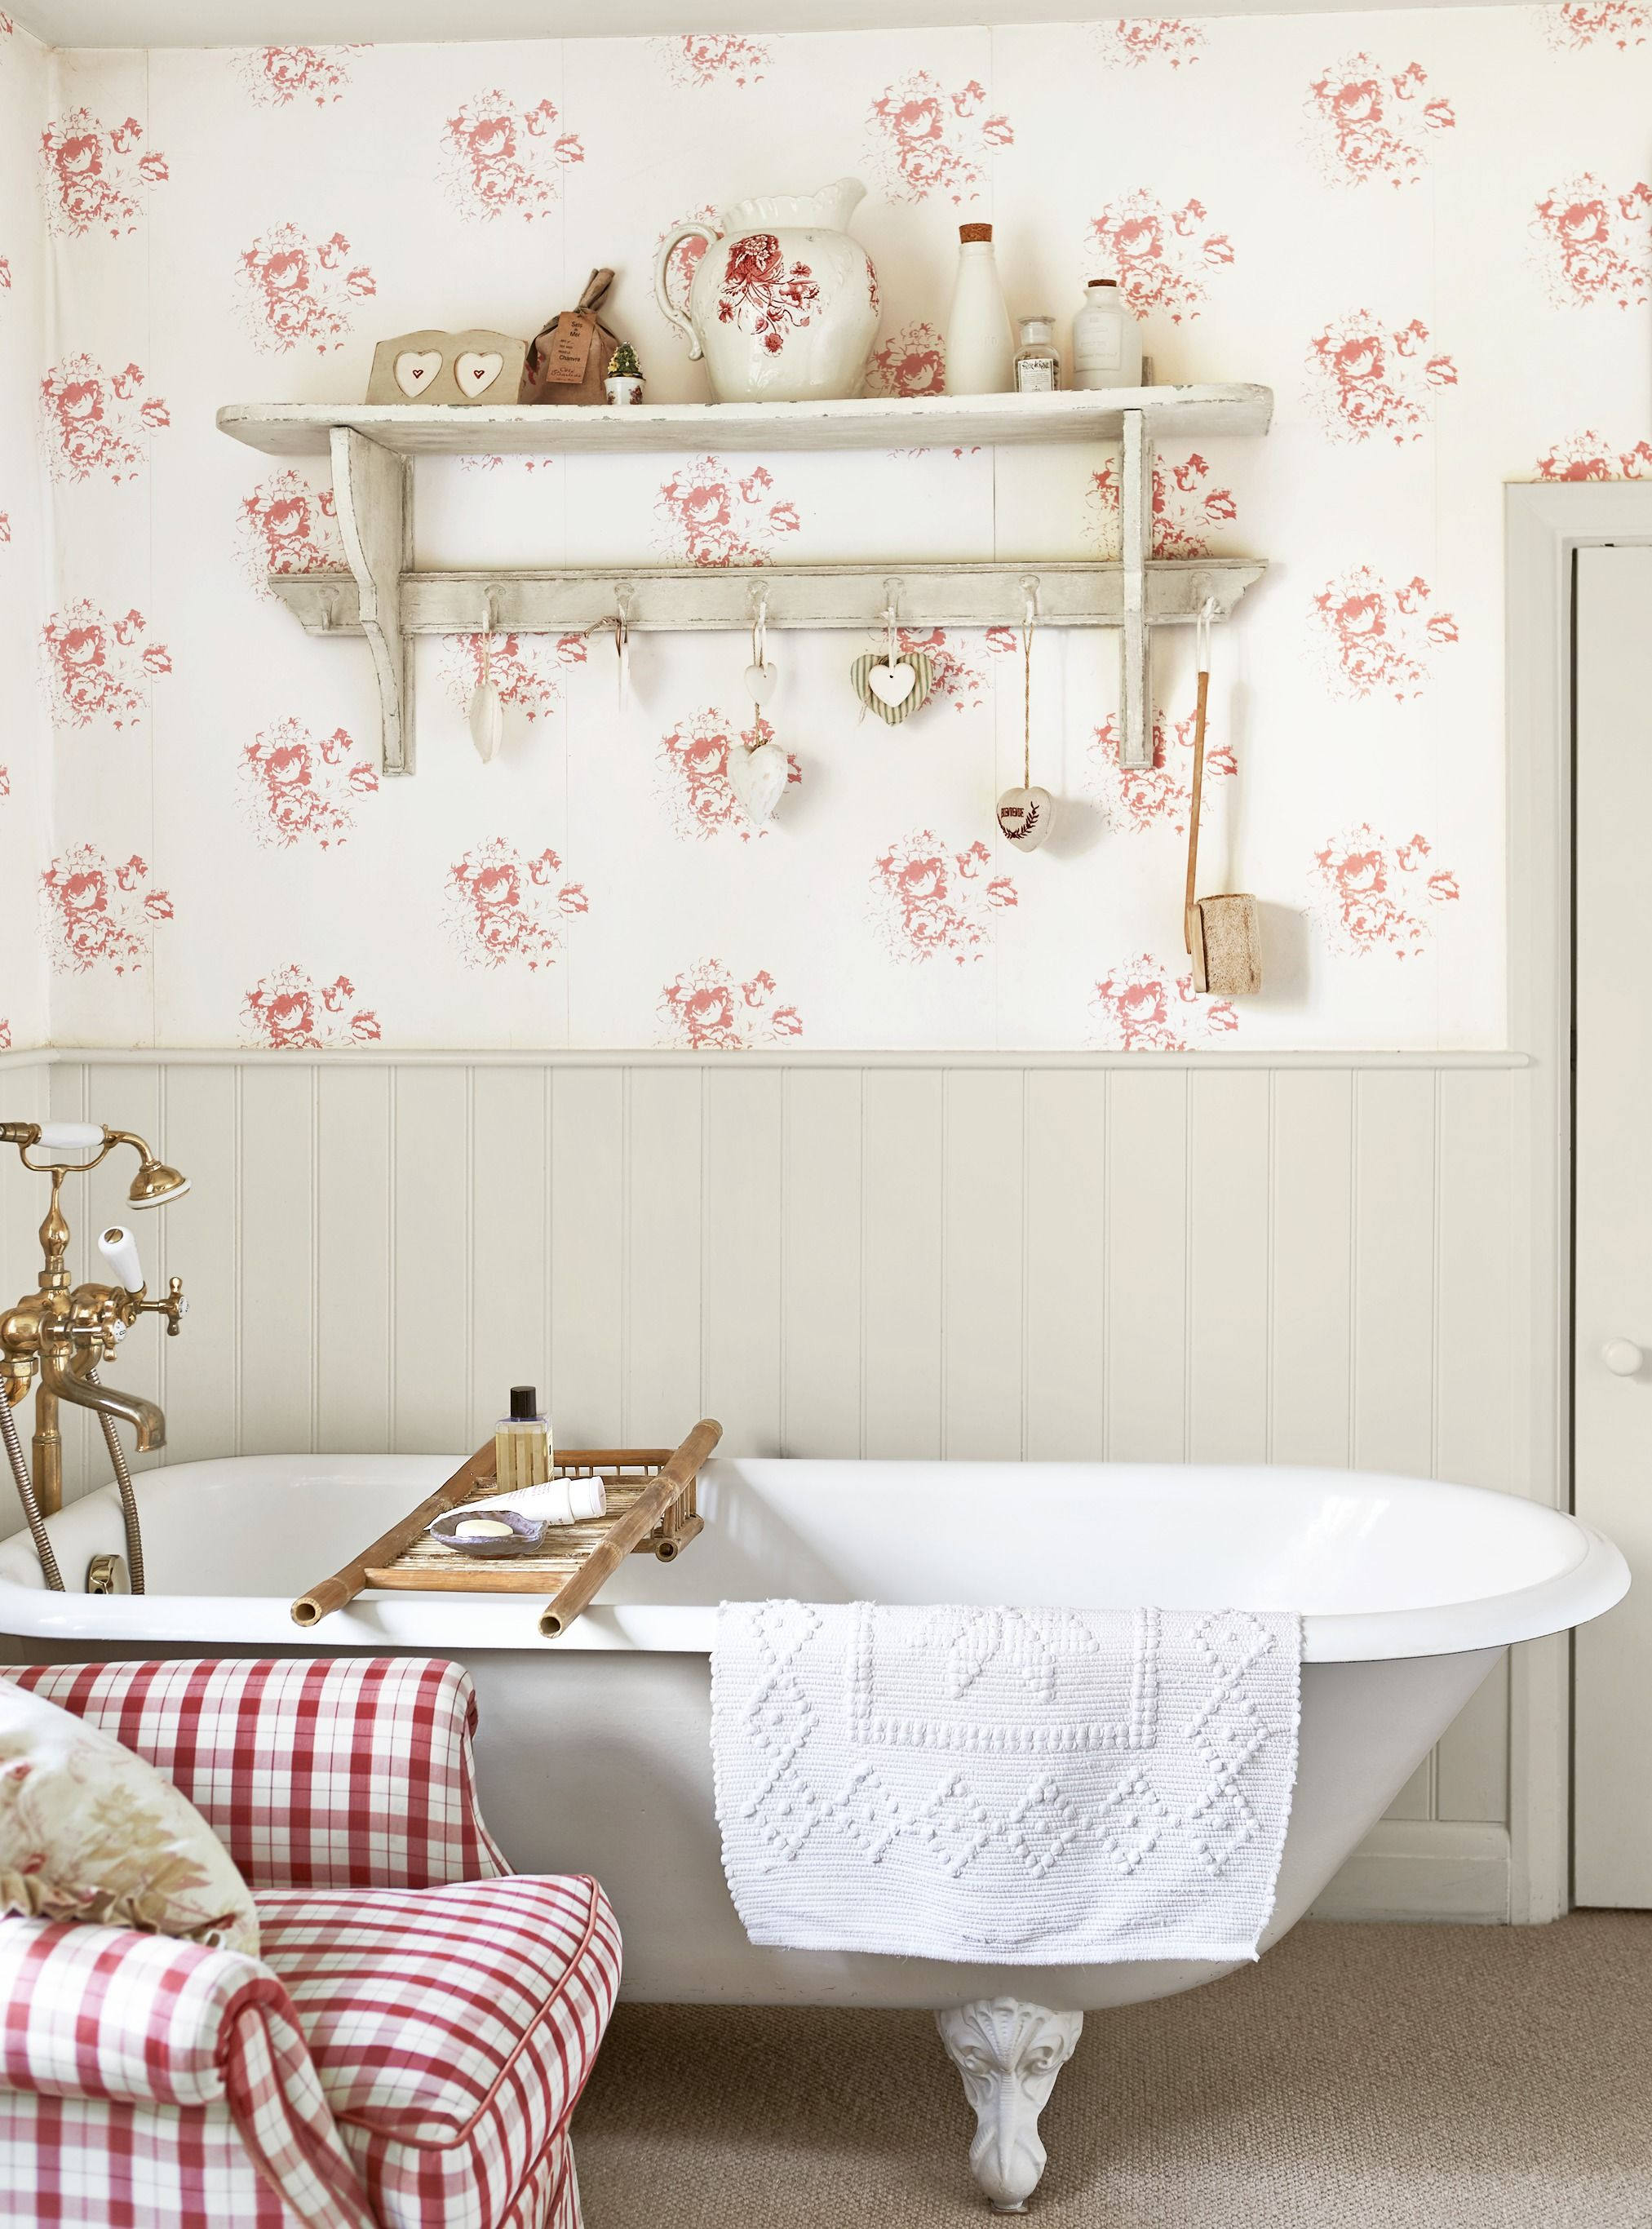 25 Bathroom Wallpaper Ideas Best Wallpaper For Bathrooms